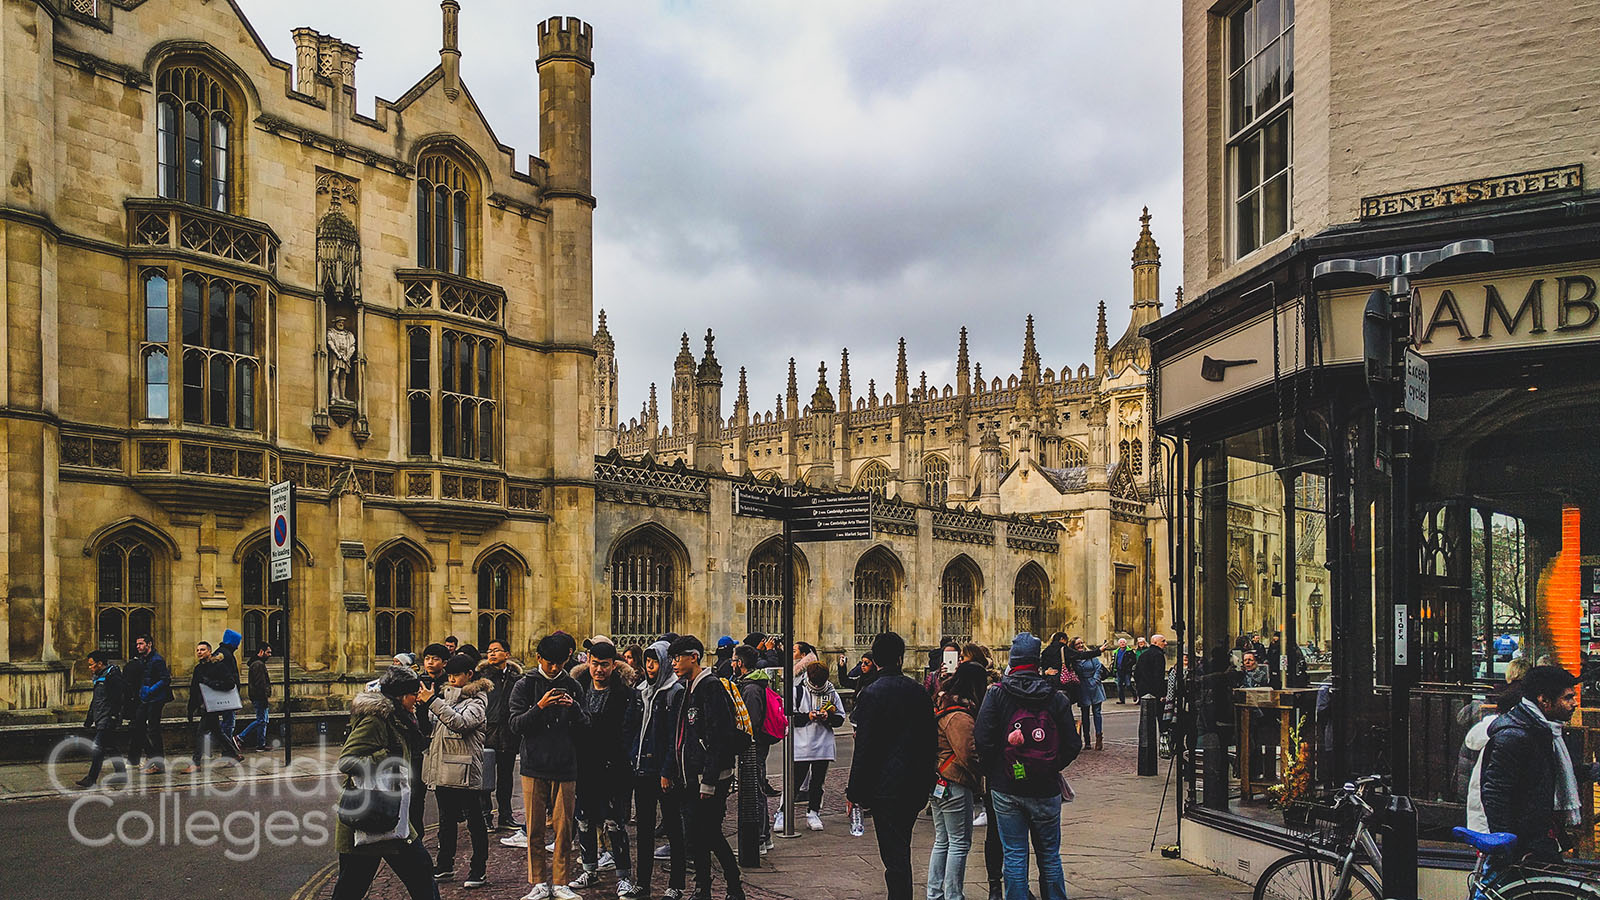 King,s college and King's parade in Cambridge